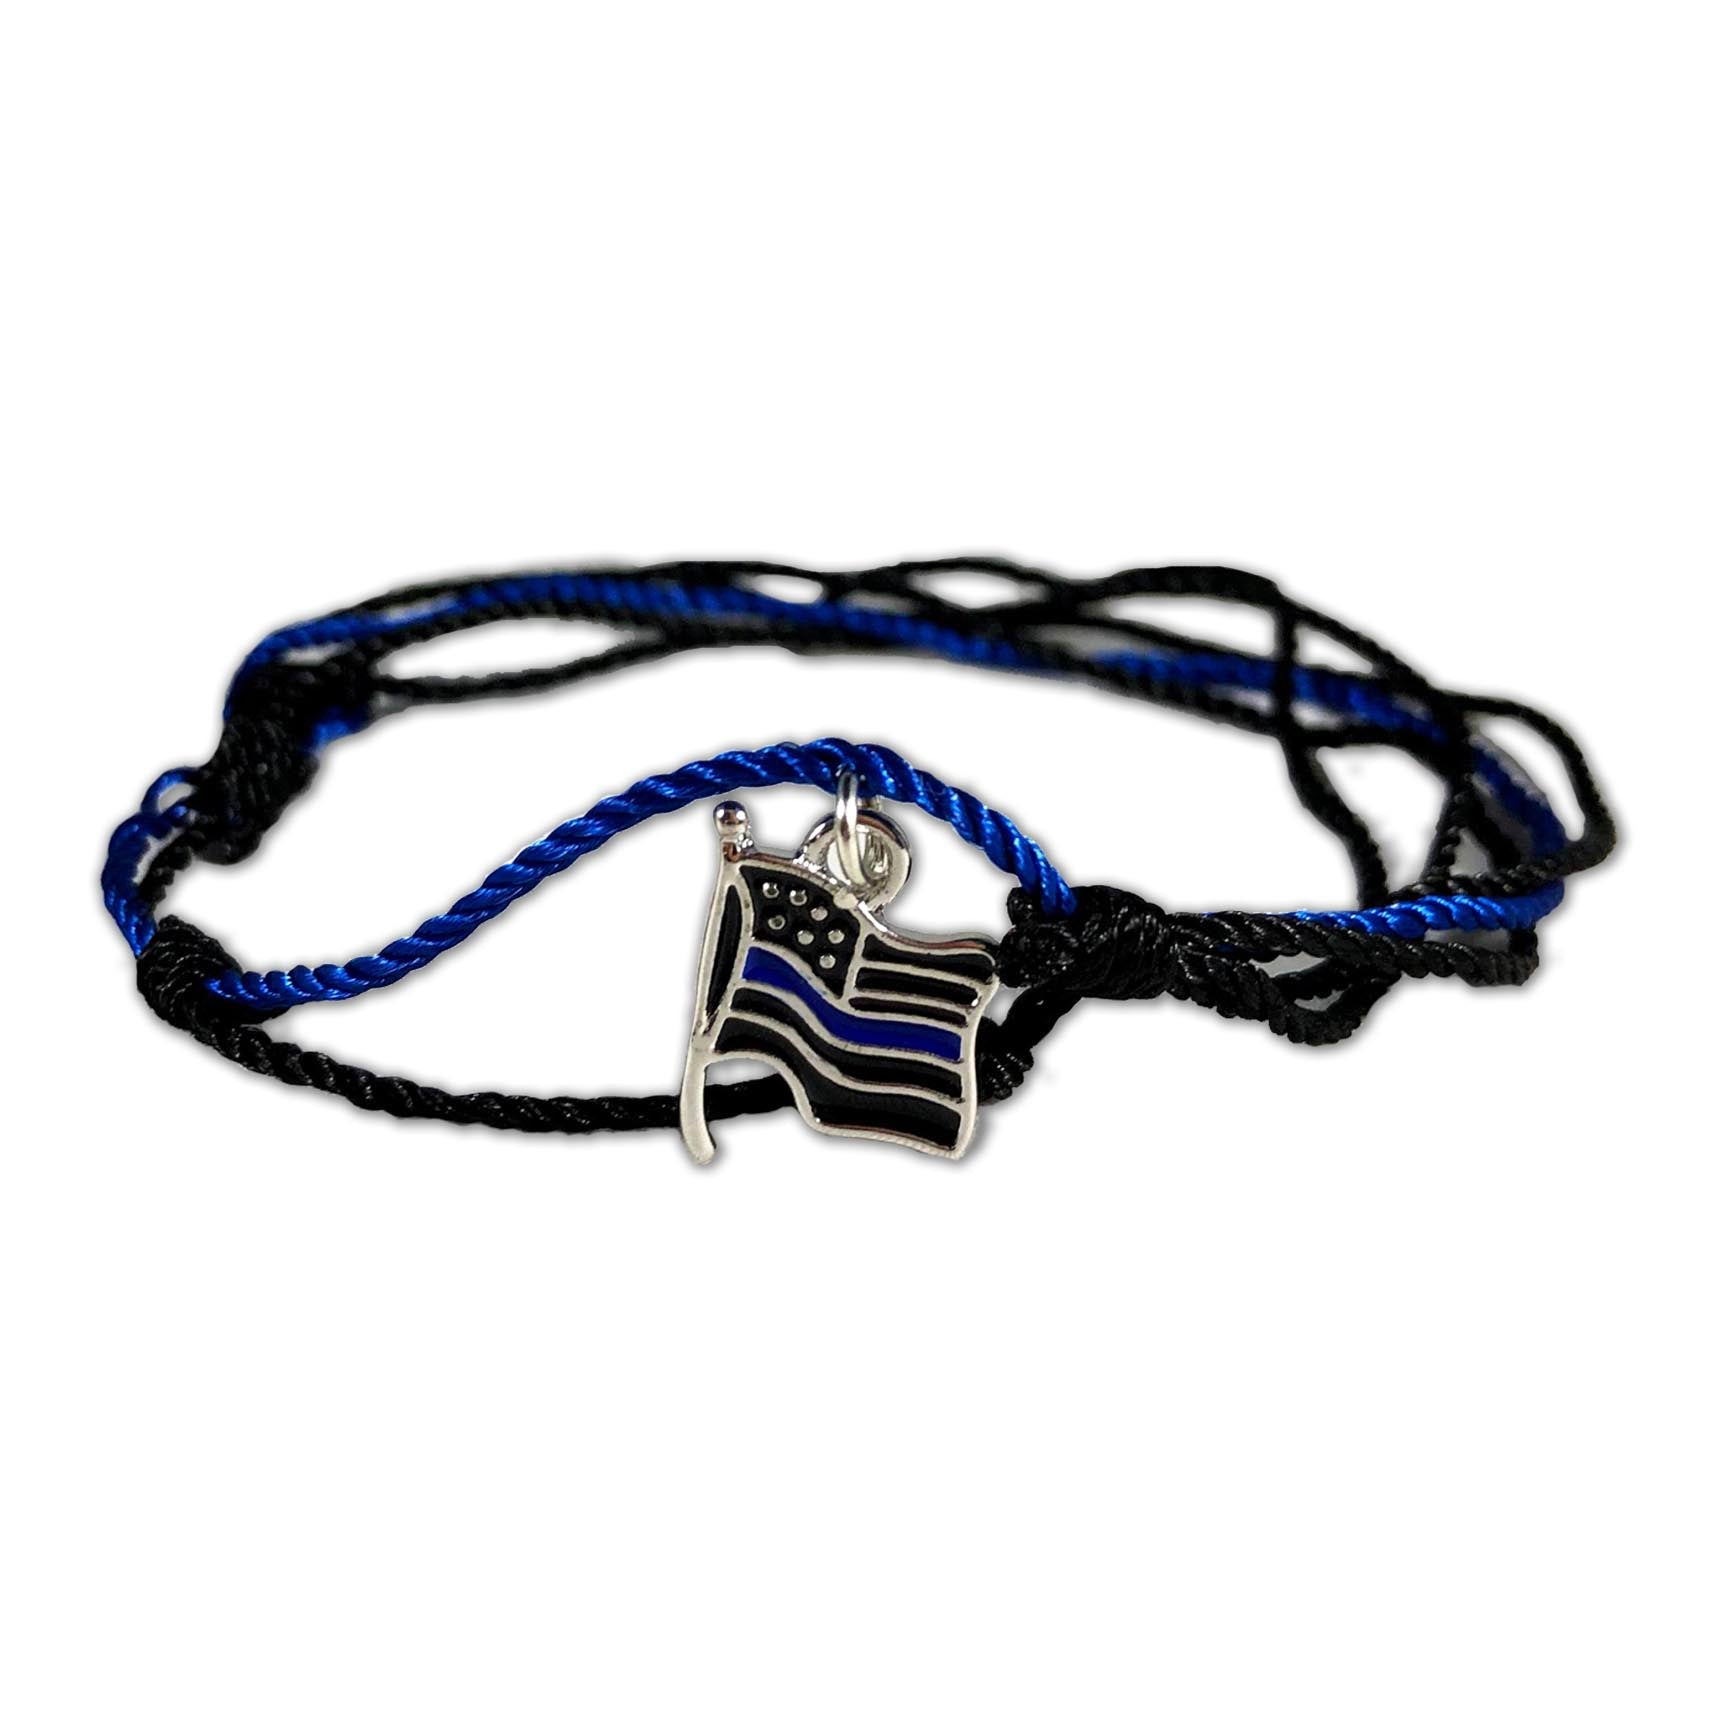 bracelet ribbon lrg line wide thin blue thickthinblueline